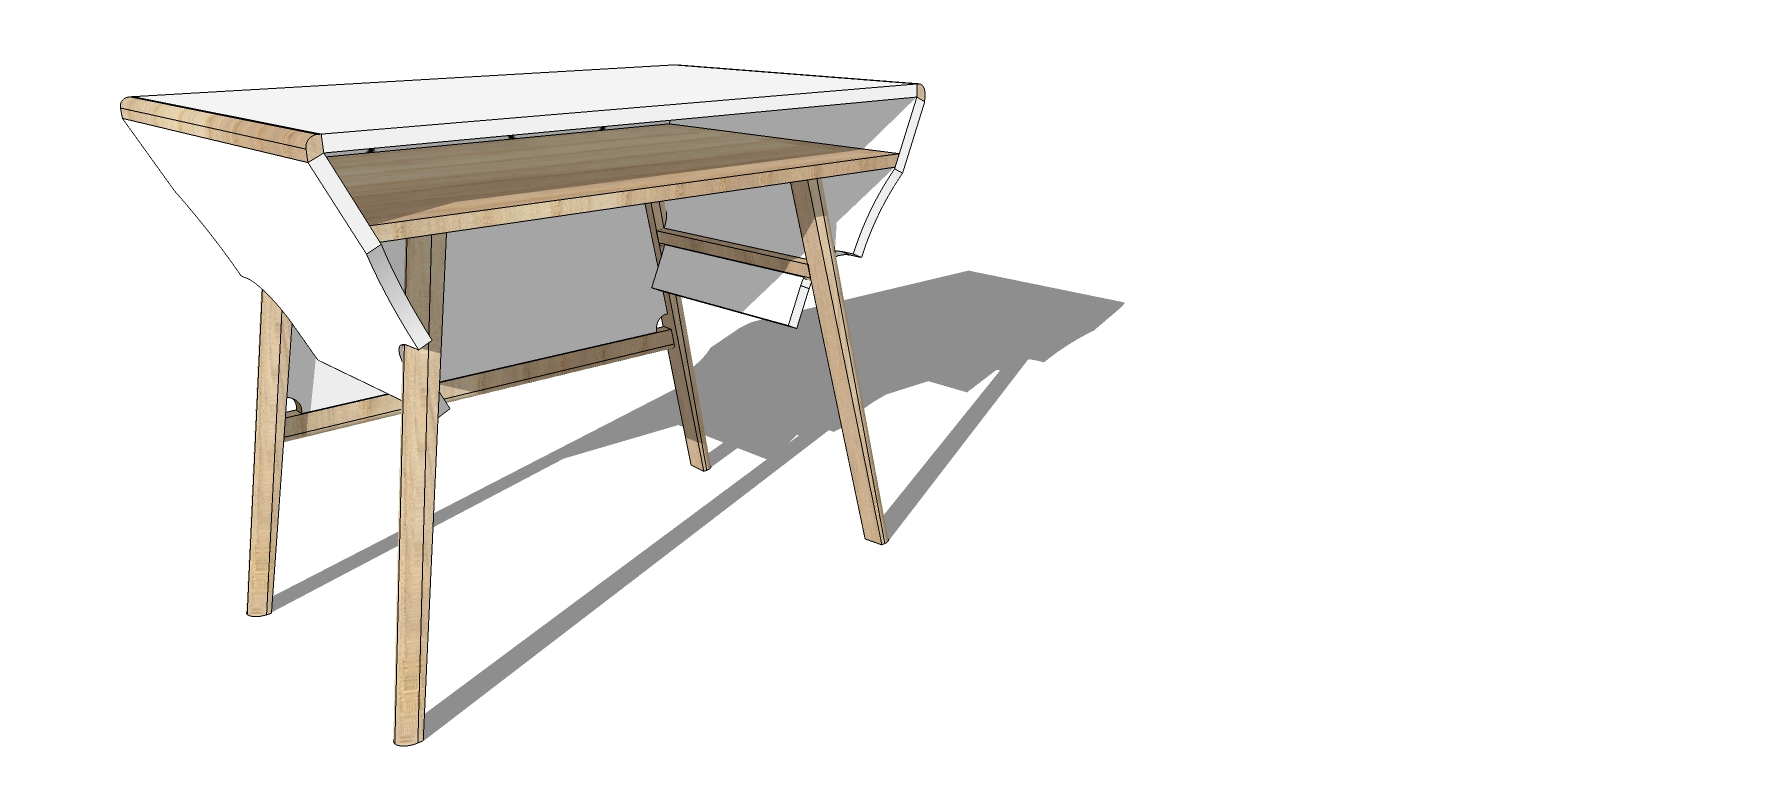 Reading room desk design